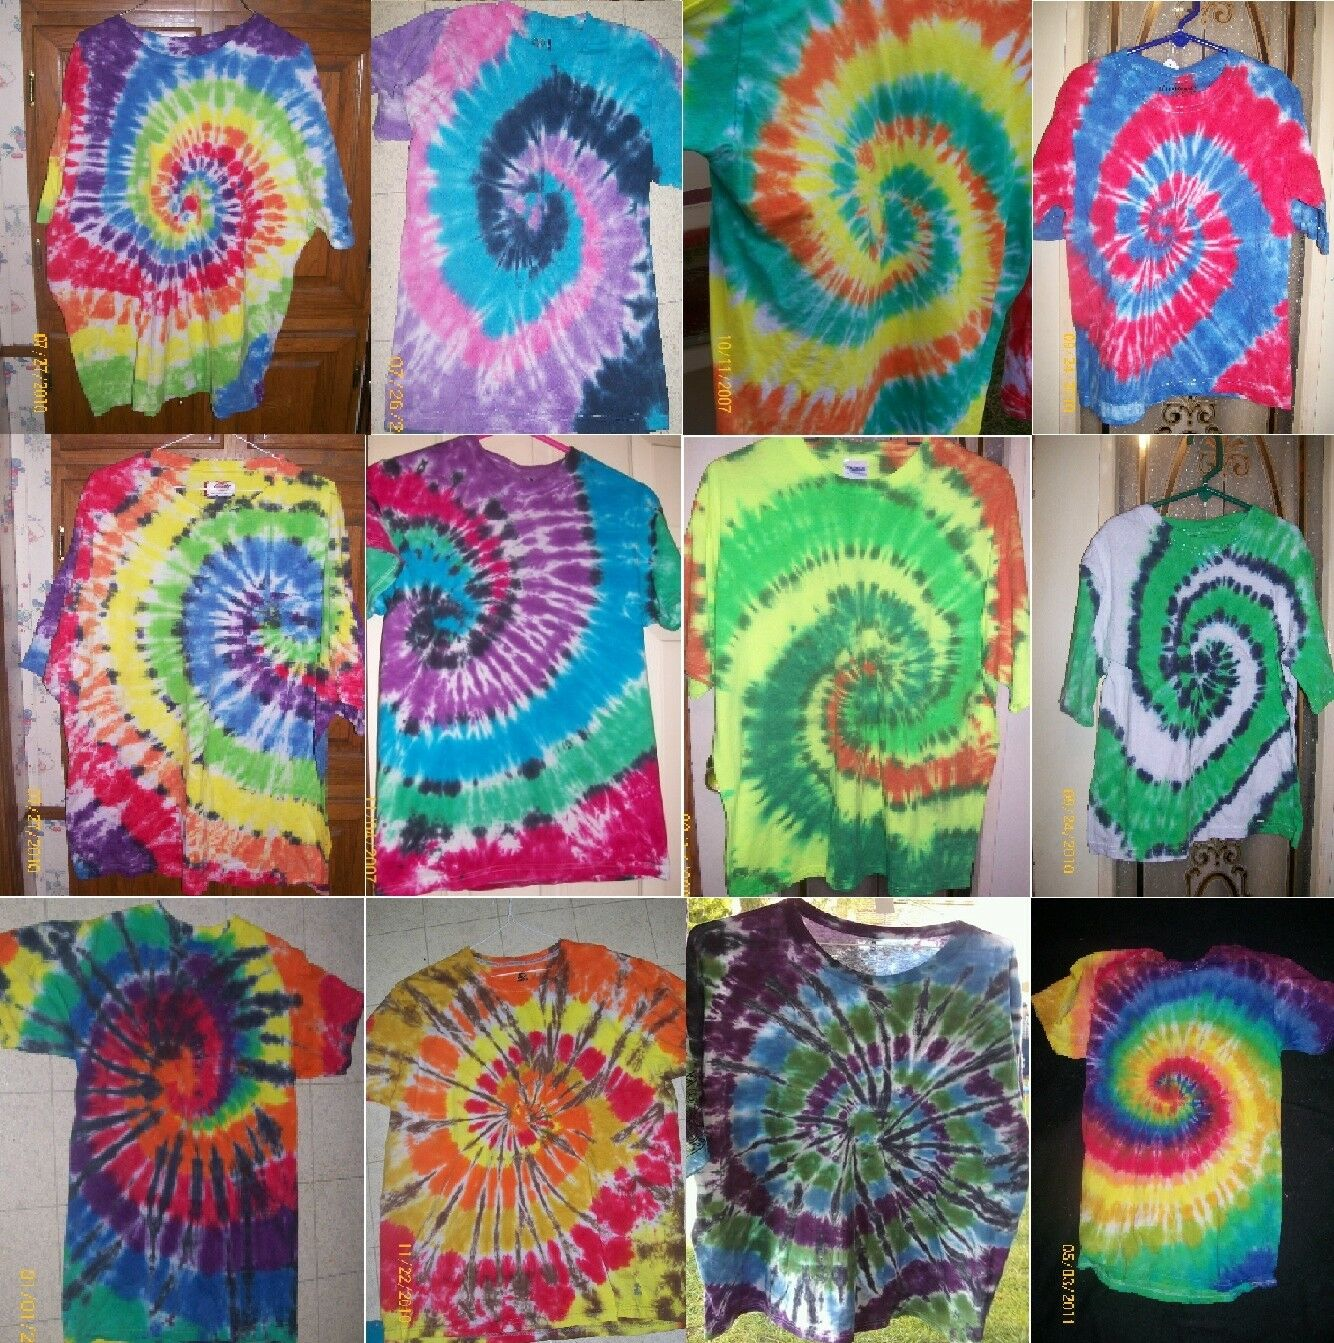 Details about KIDS Handmade tie dye shirt - TRADITIONAL - SWIRL / SPIRAL -  you choose colors!